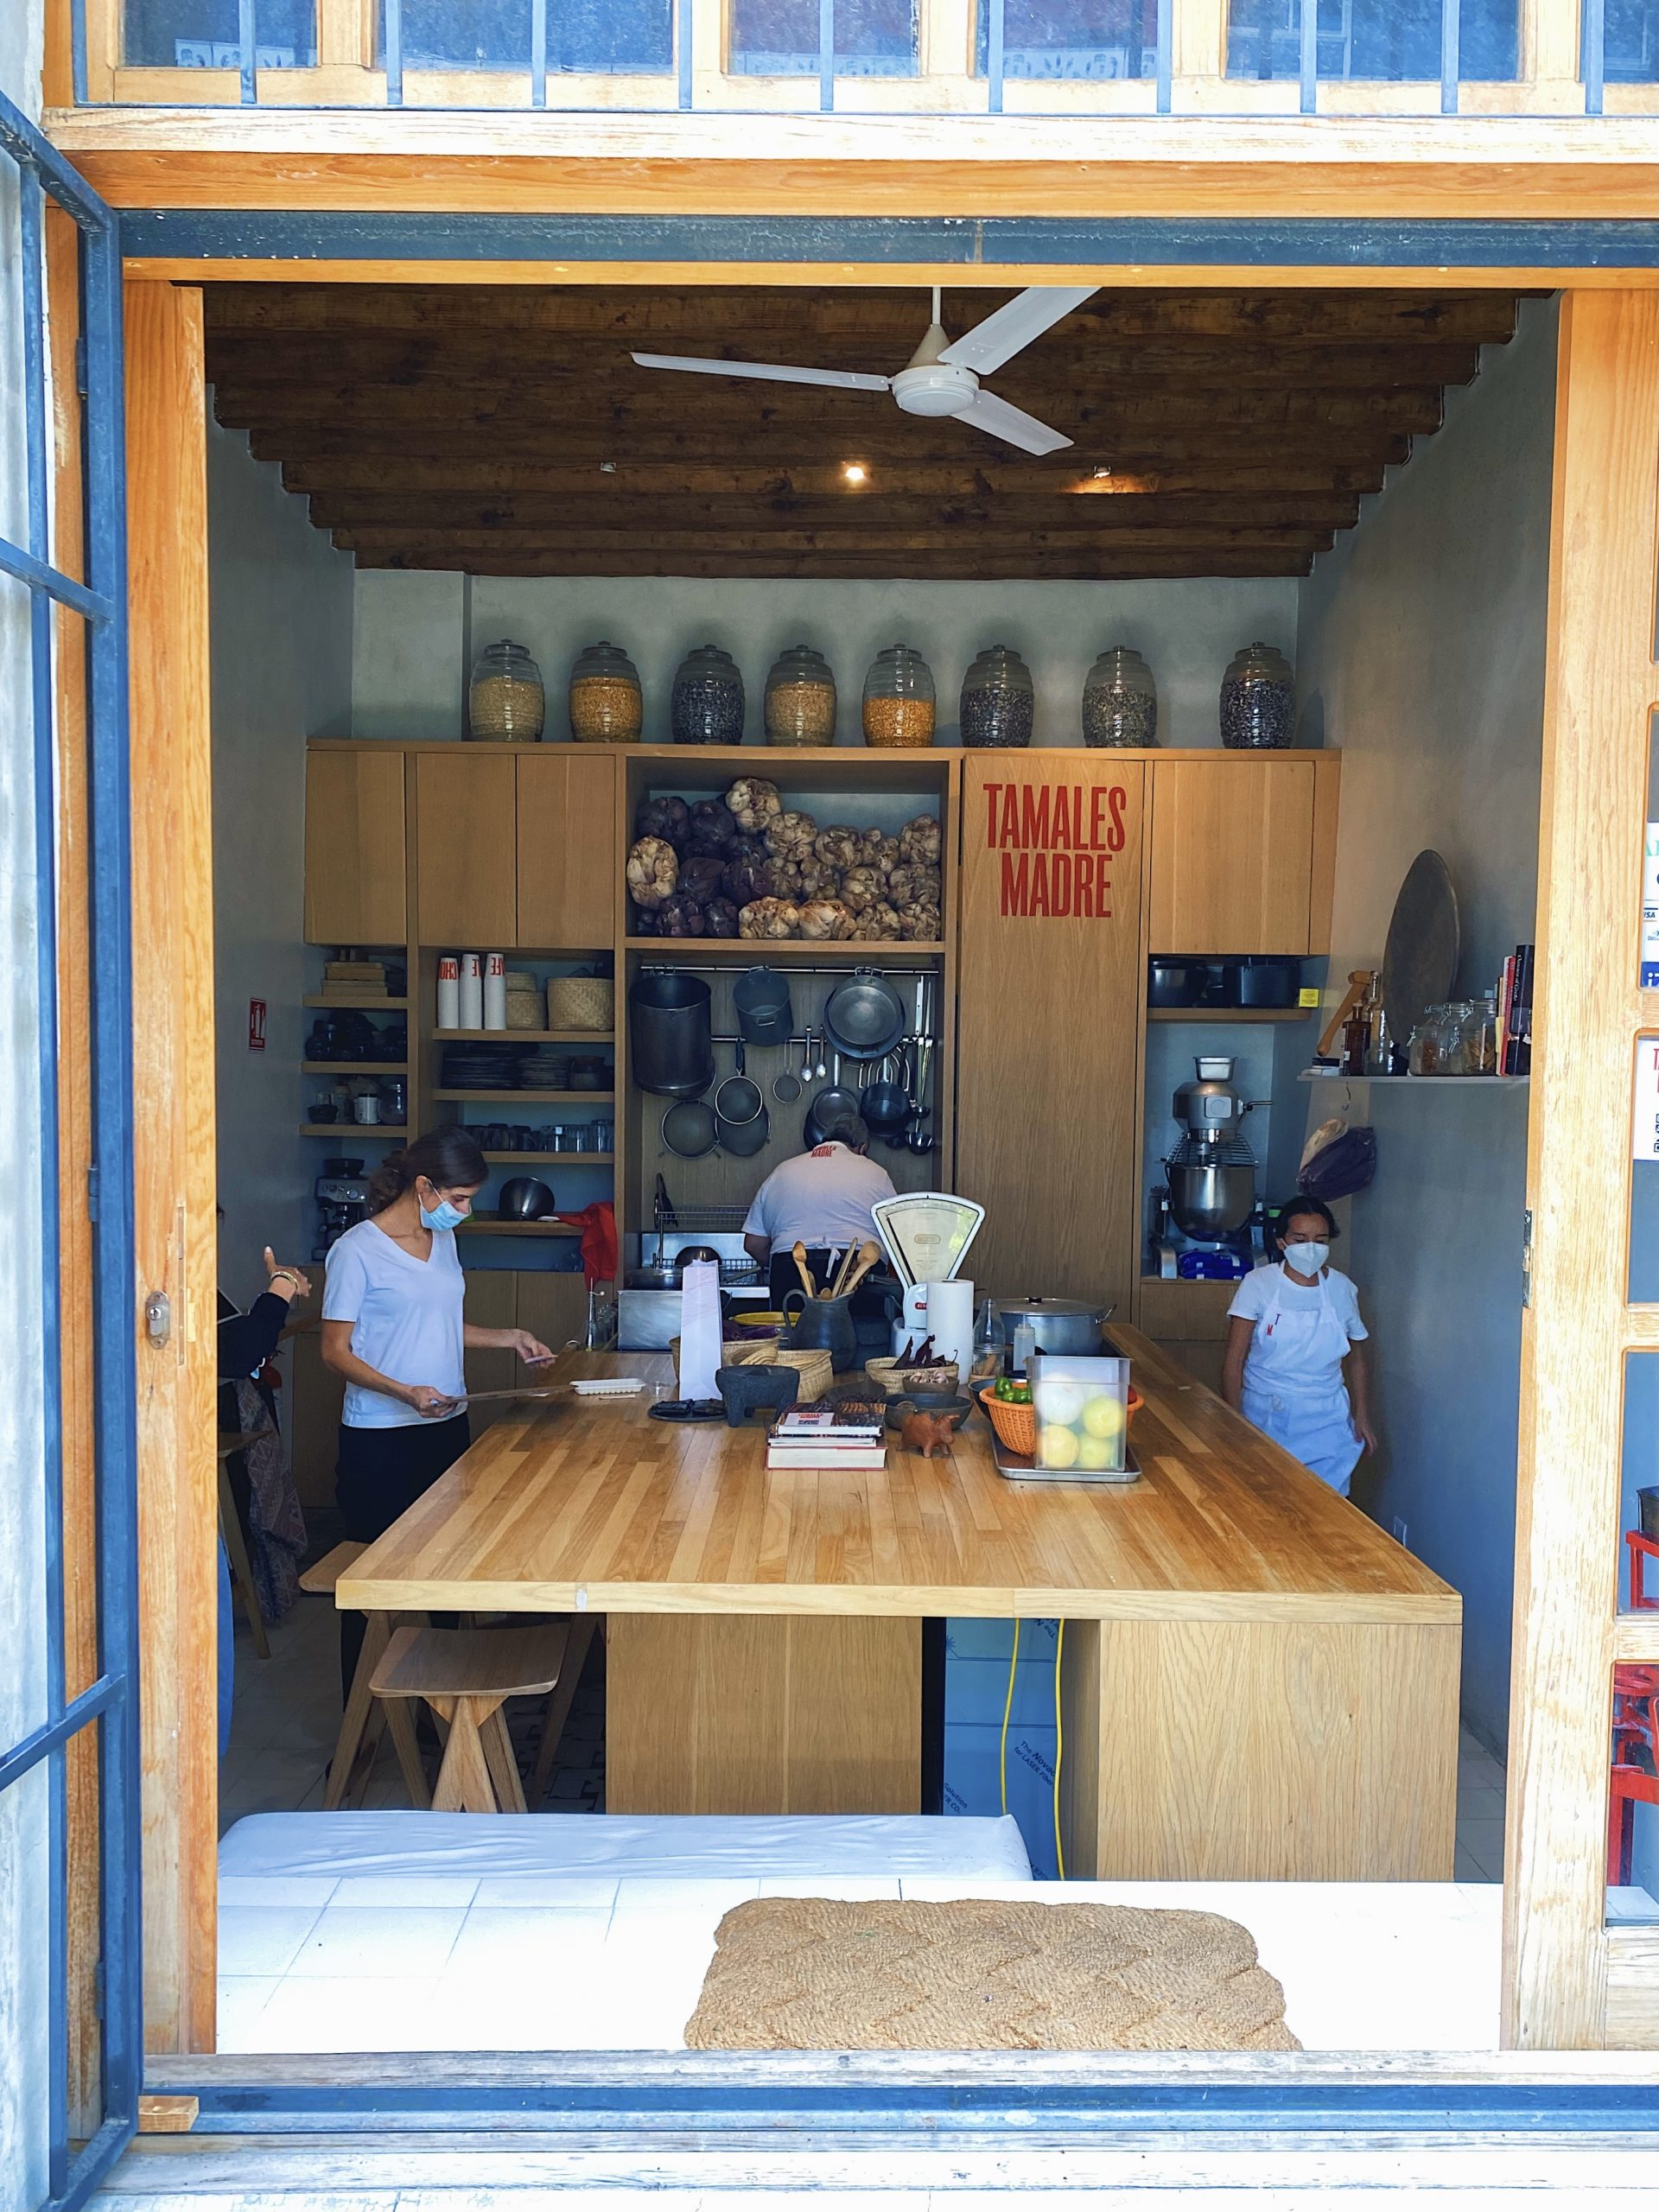 wu-haus-mexico-city-guide-food-tamales